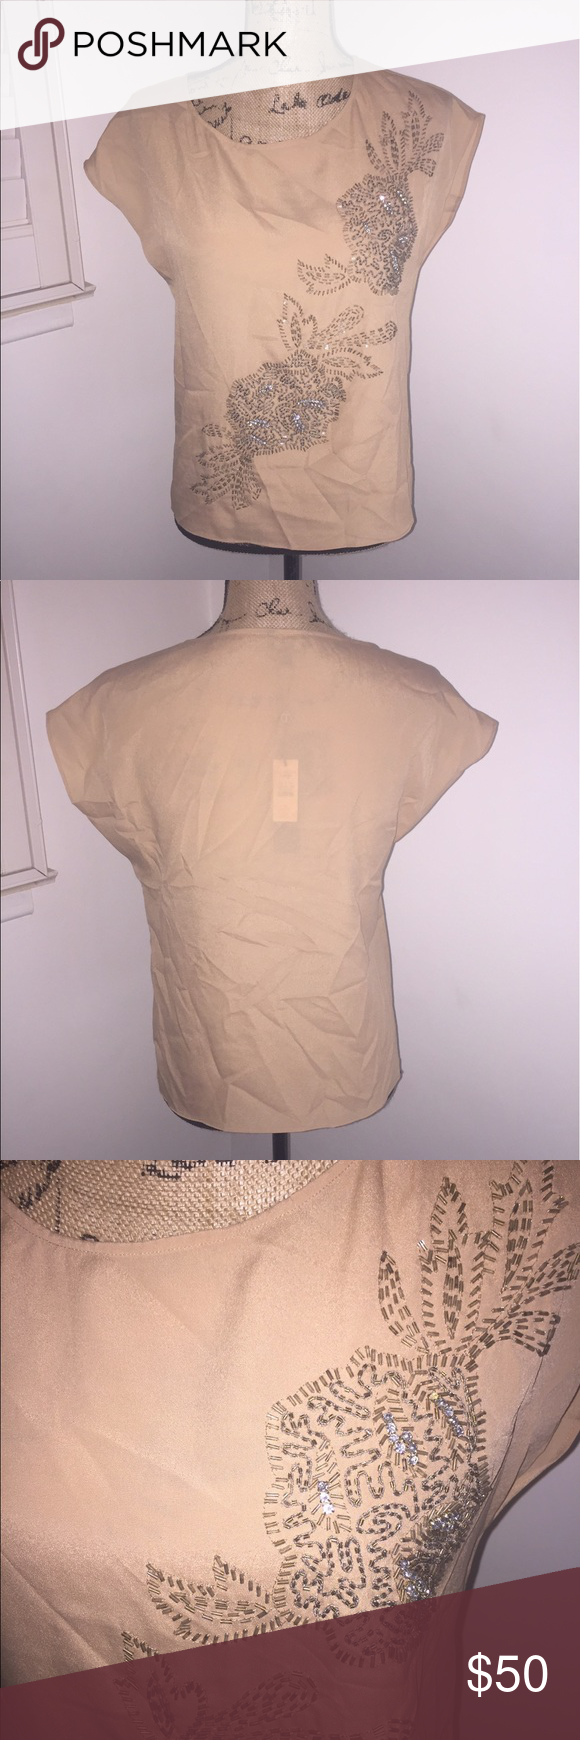 Talbots Top Brand new with Tags. Arm pit to arm pit is 20' and 22 1/2' from top to bottom. No stains or rips. Talbots Tops